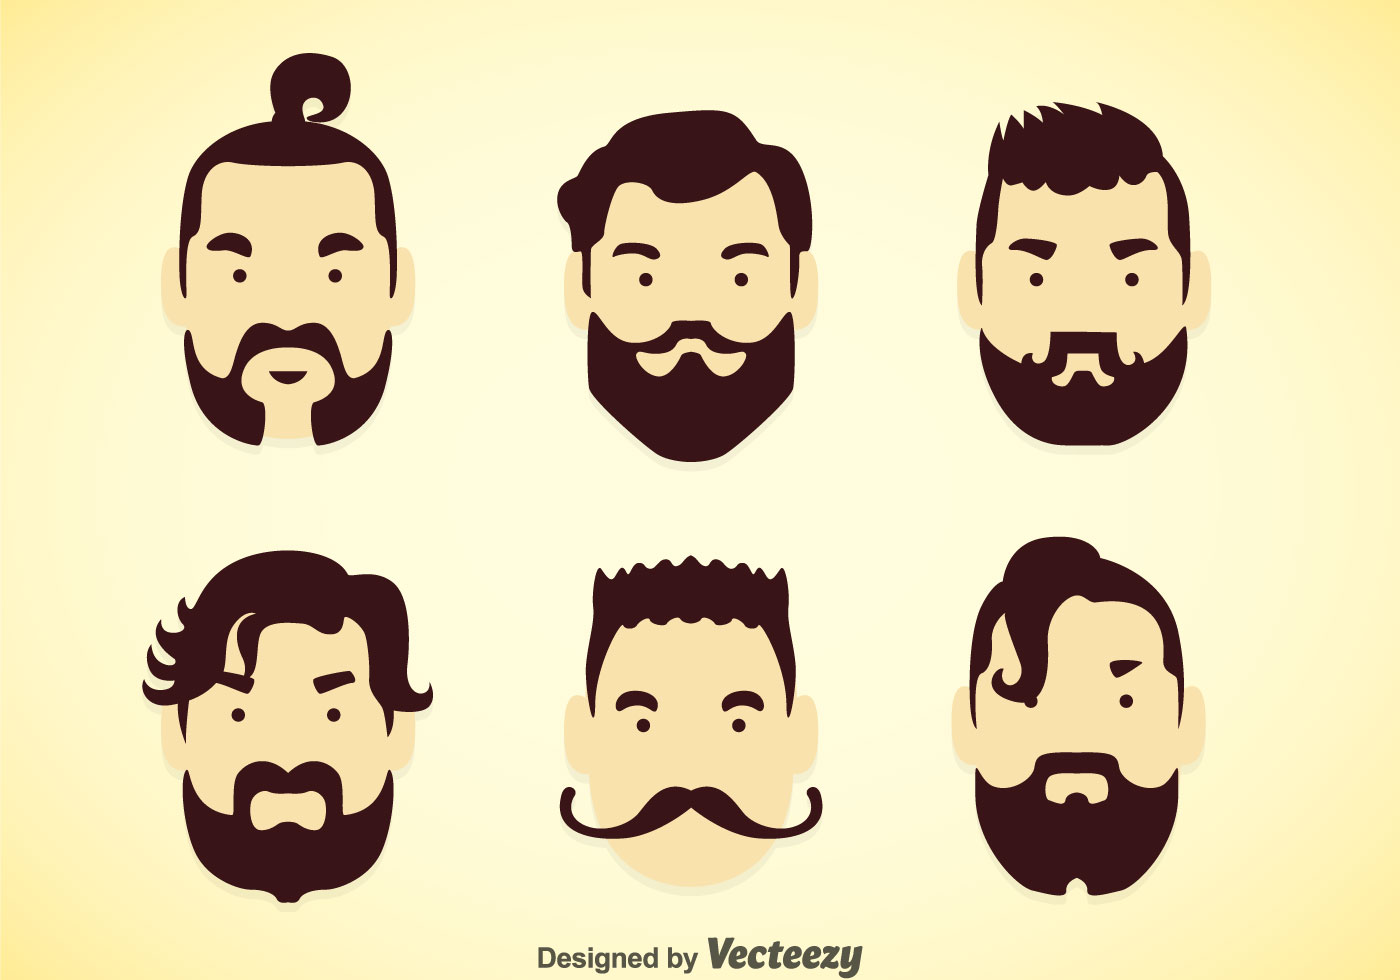 Hairstyle Vector: Man Hairstyles Vector Sets